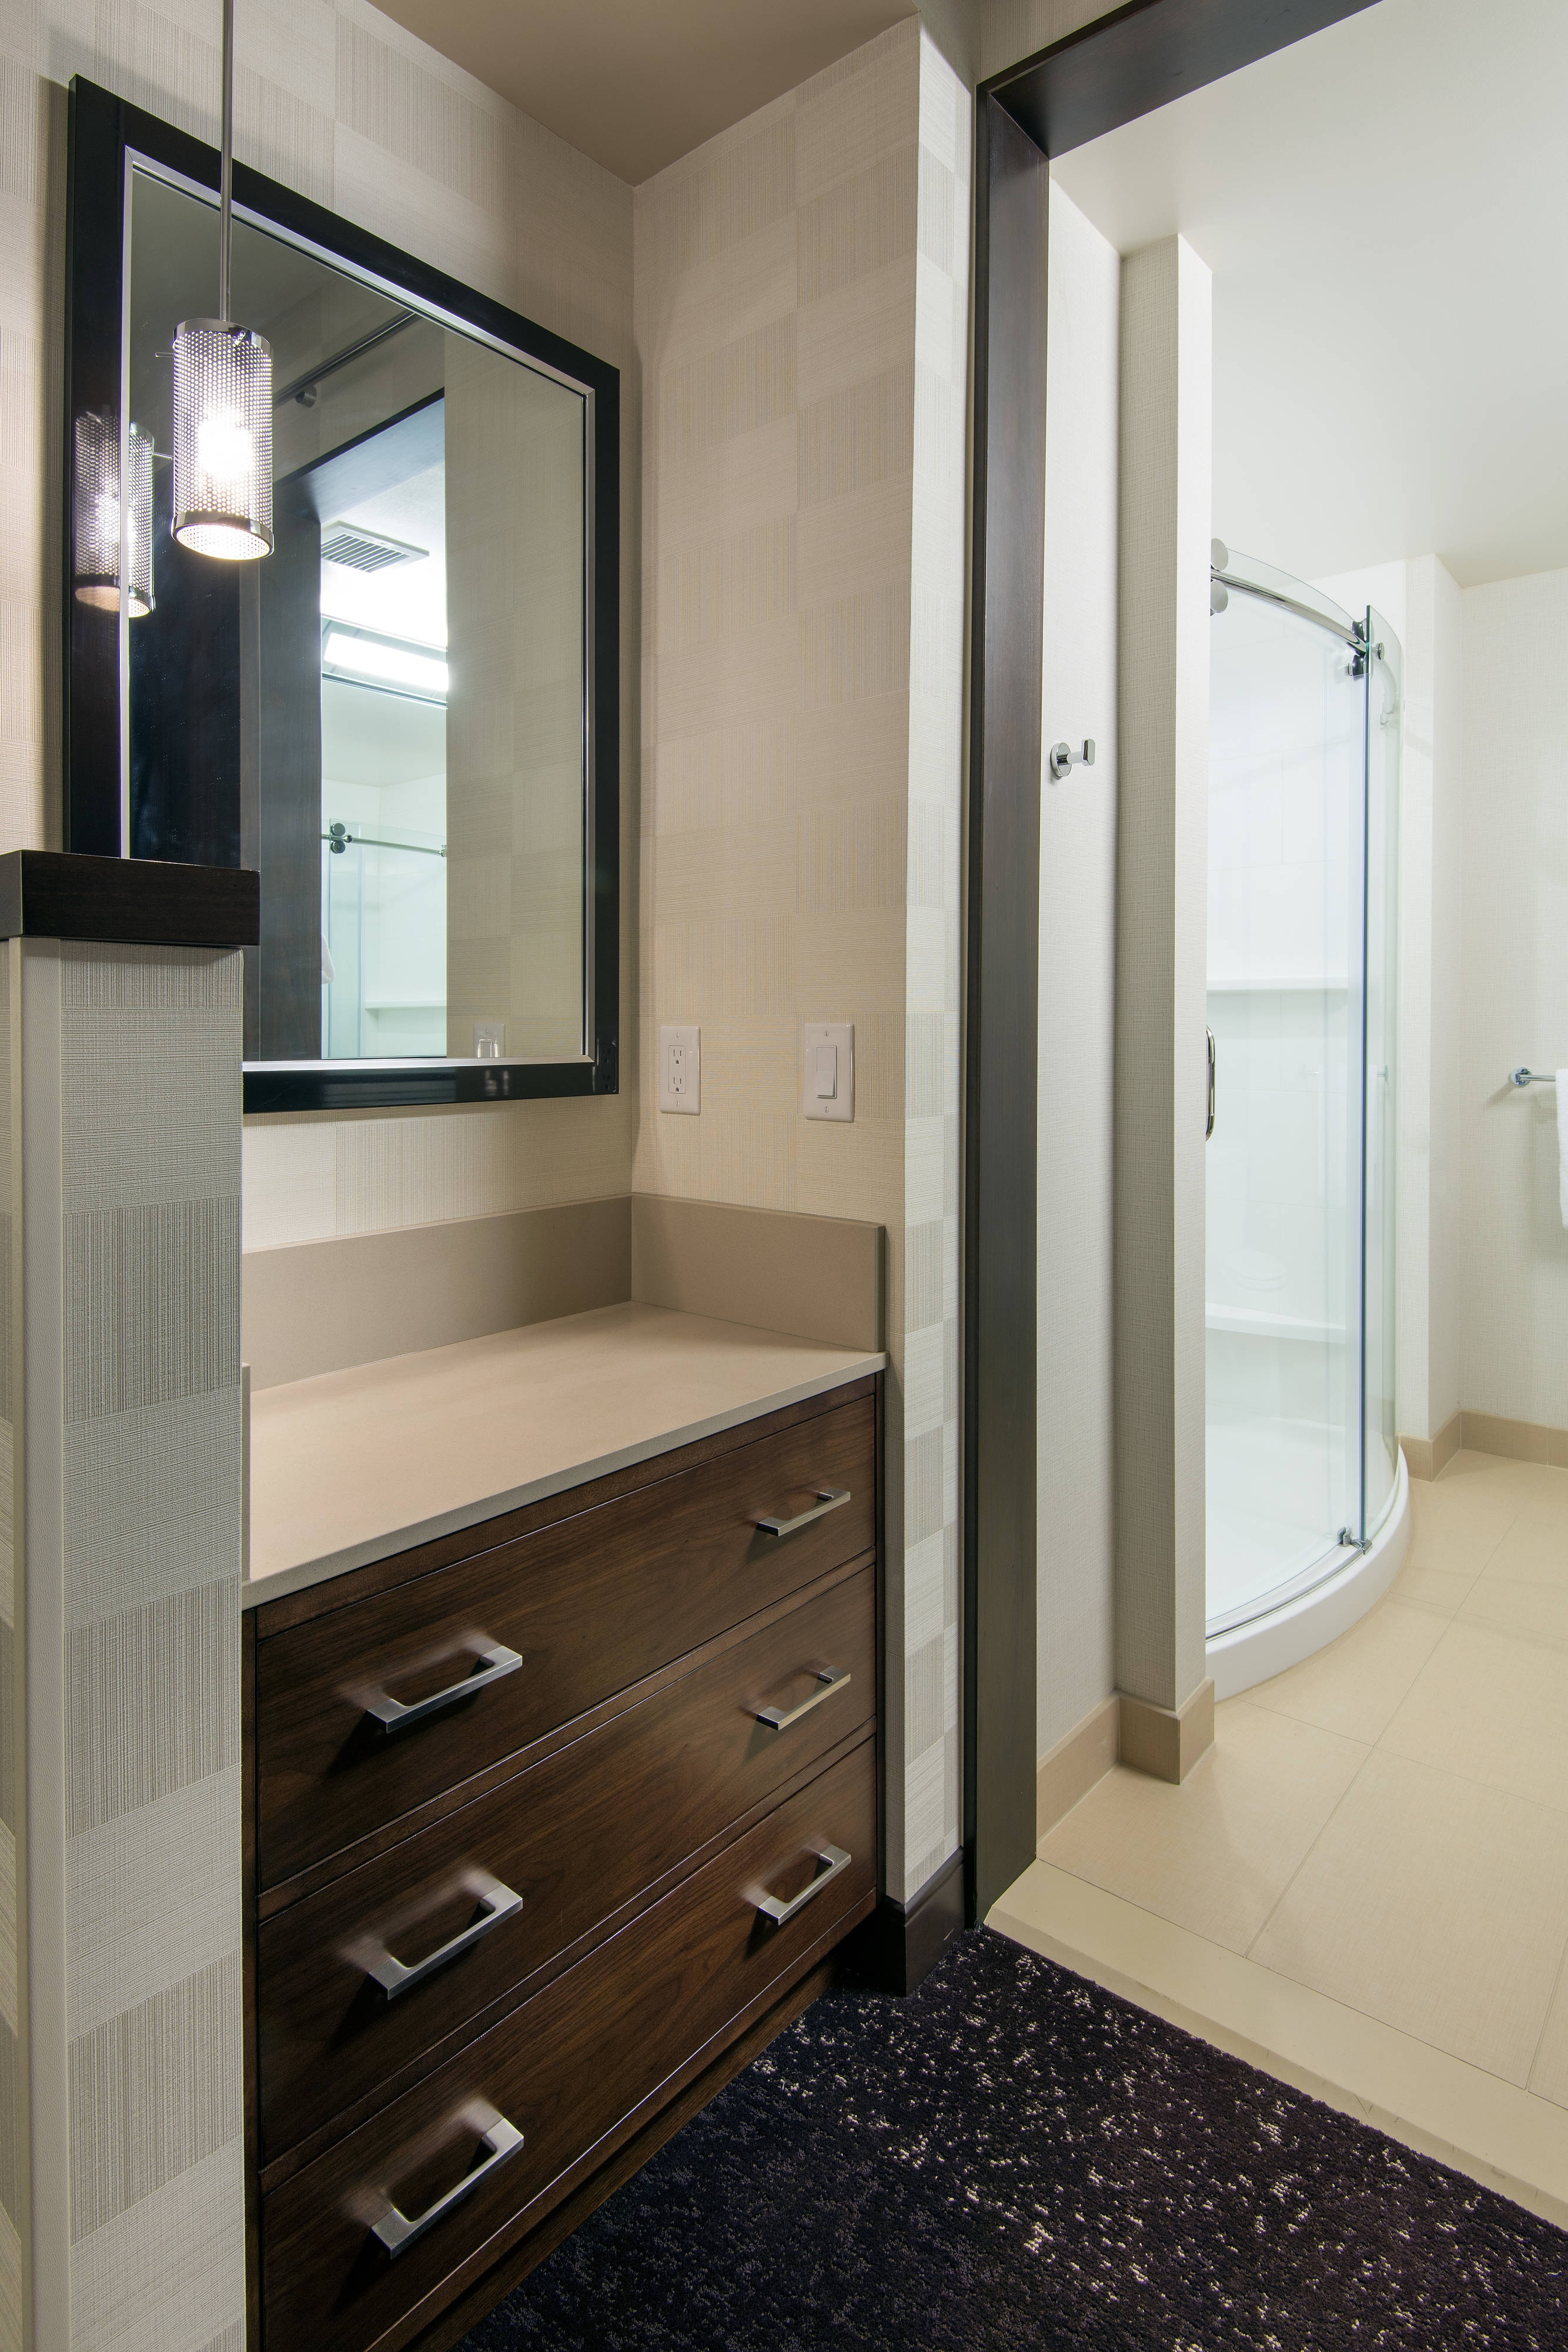 Residence Inn L.A. LIVE - Suite Bathroom